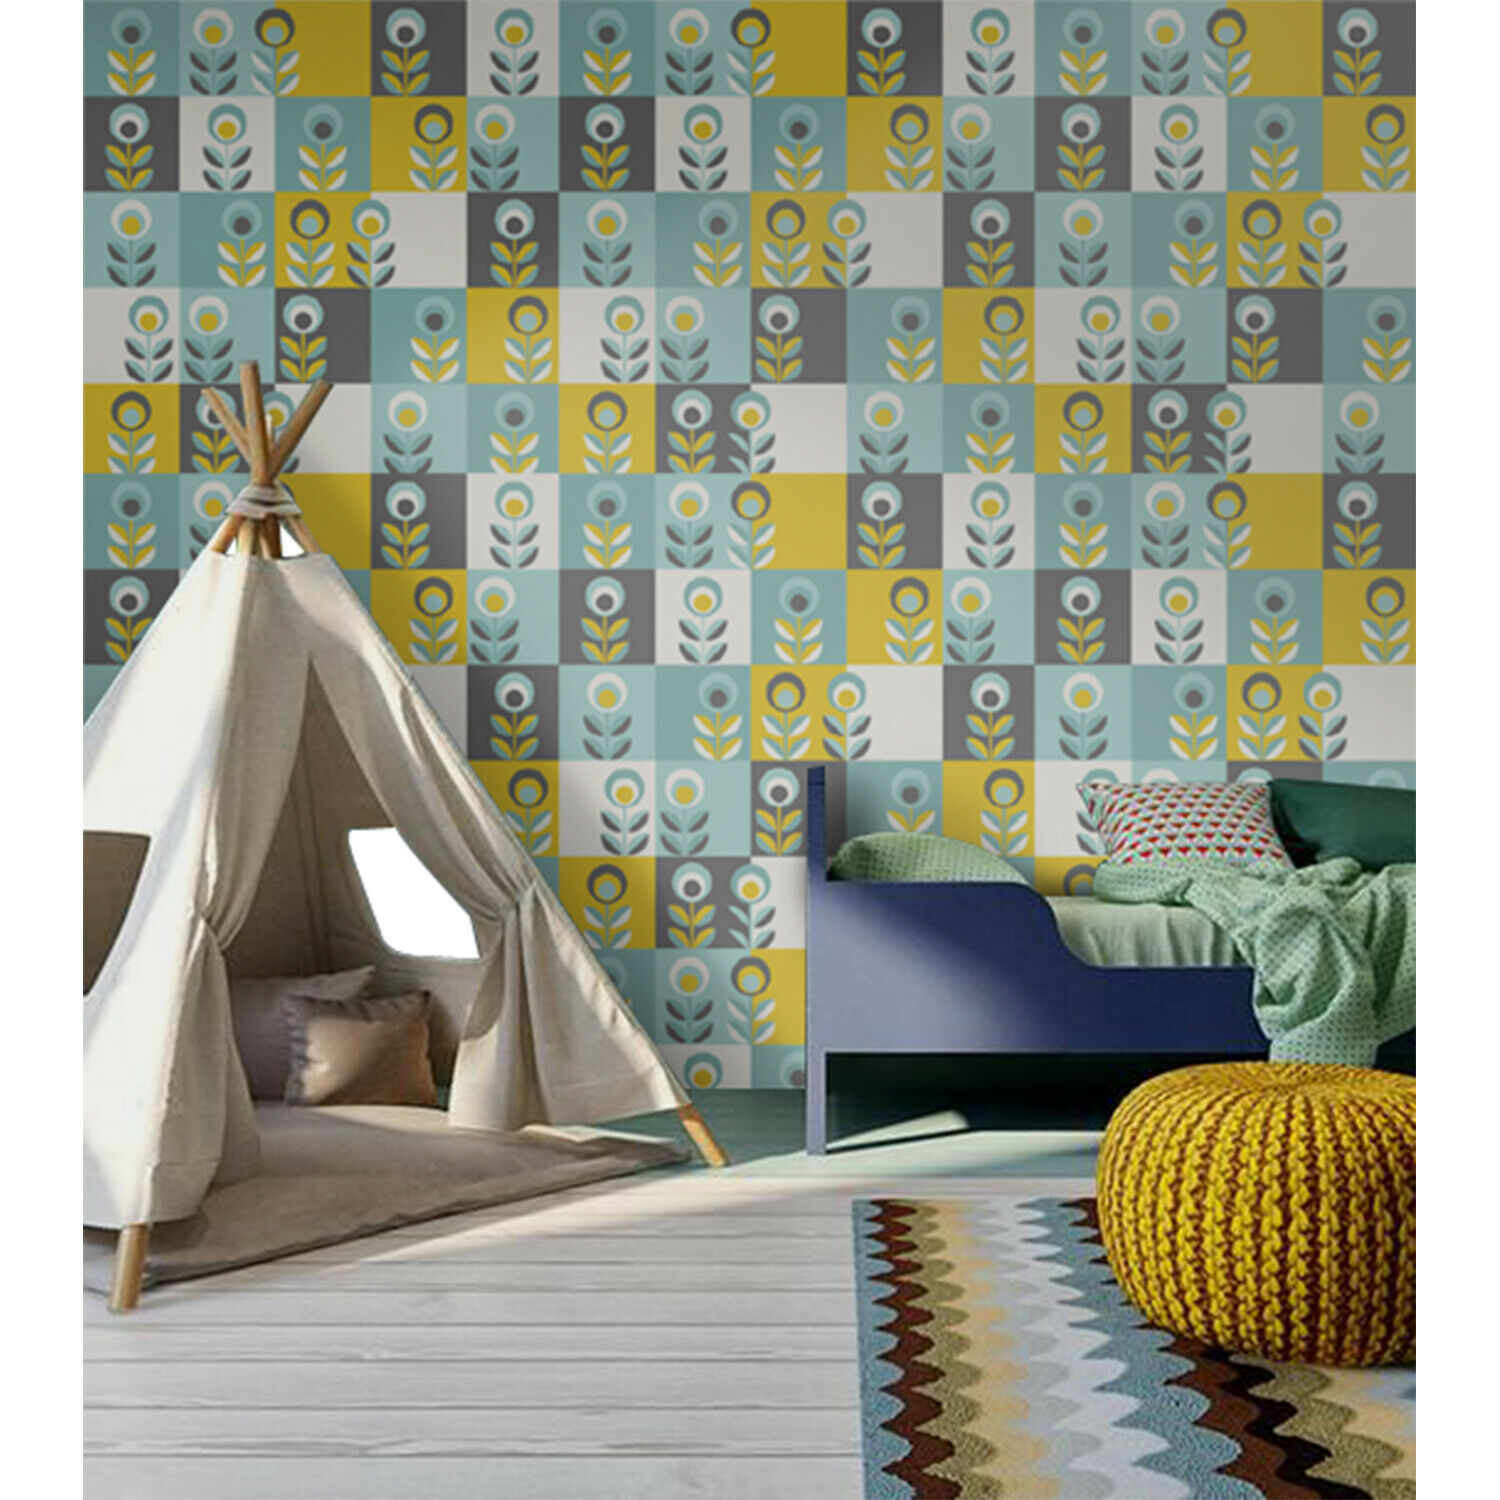 Geometric Floral wall mural Simple Home decor Scandinavian Non-Woven wallpaper